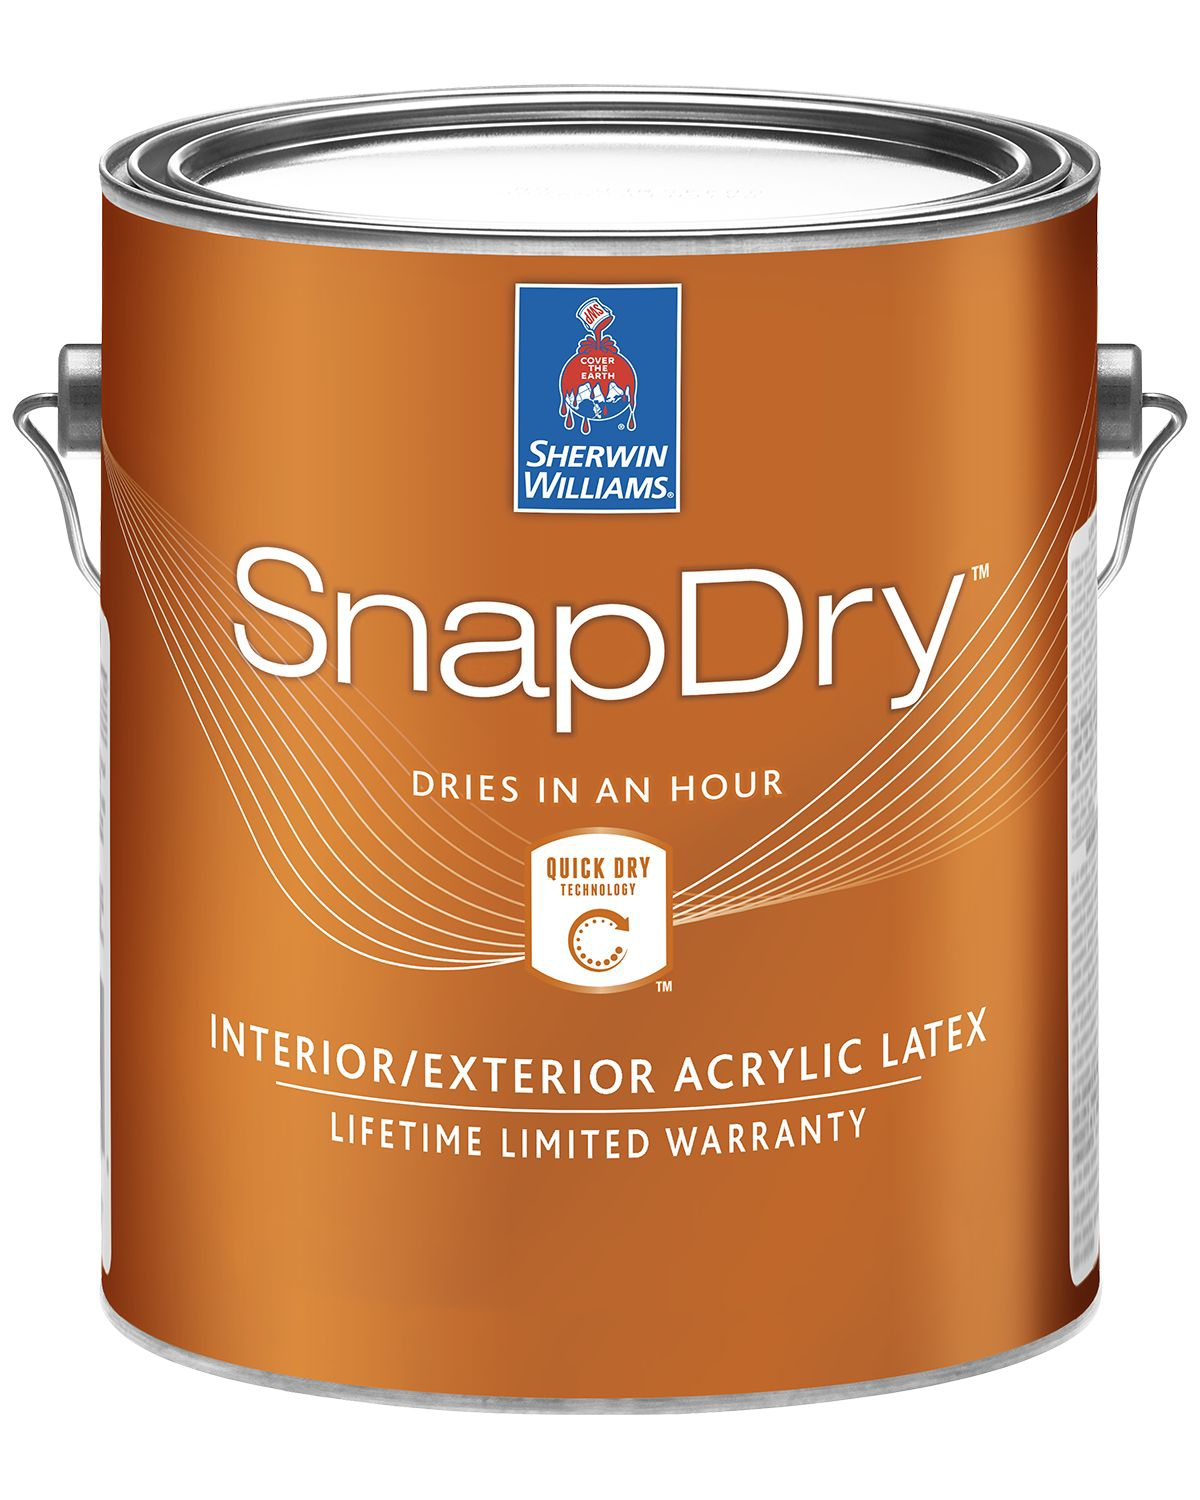 SnapDry can of paint